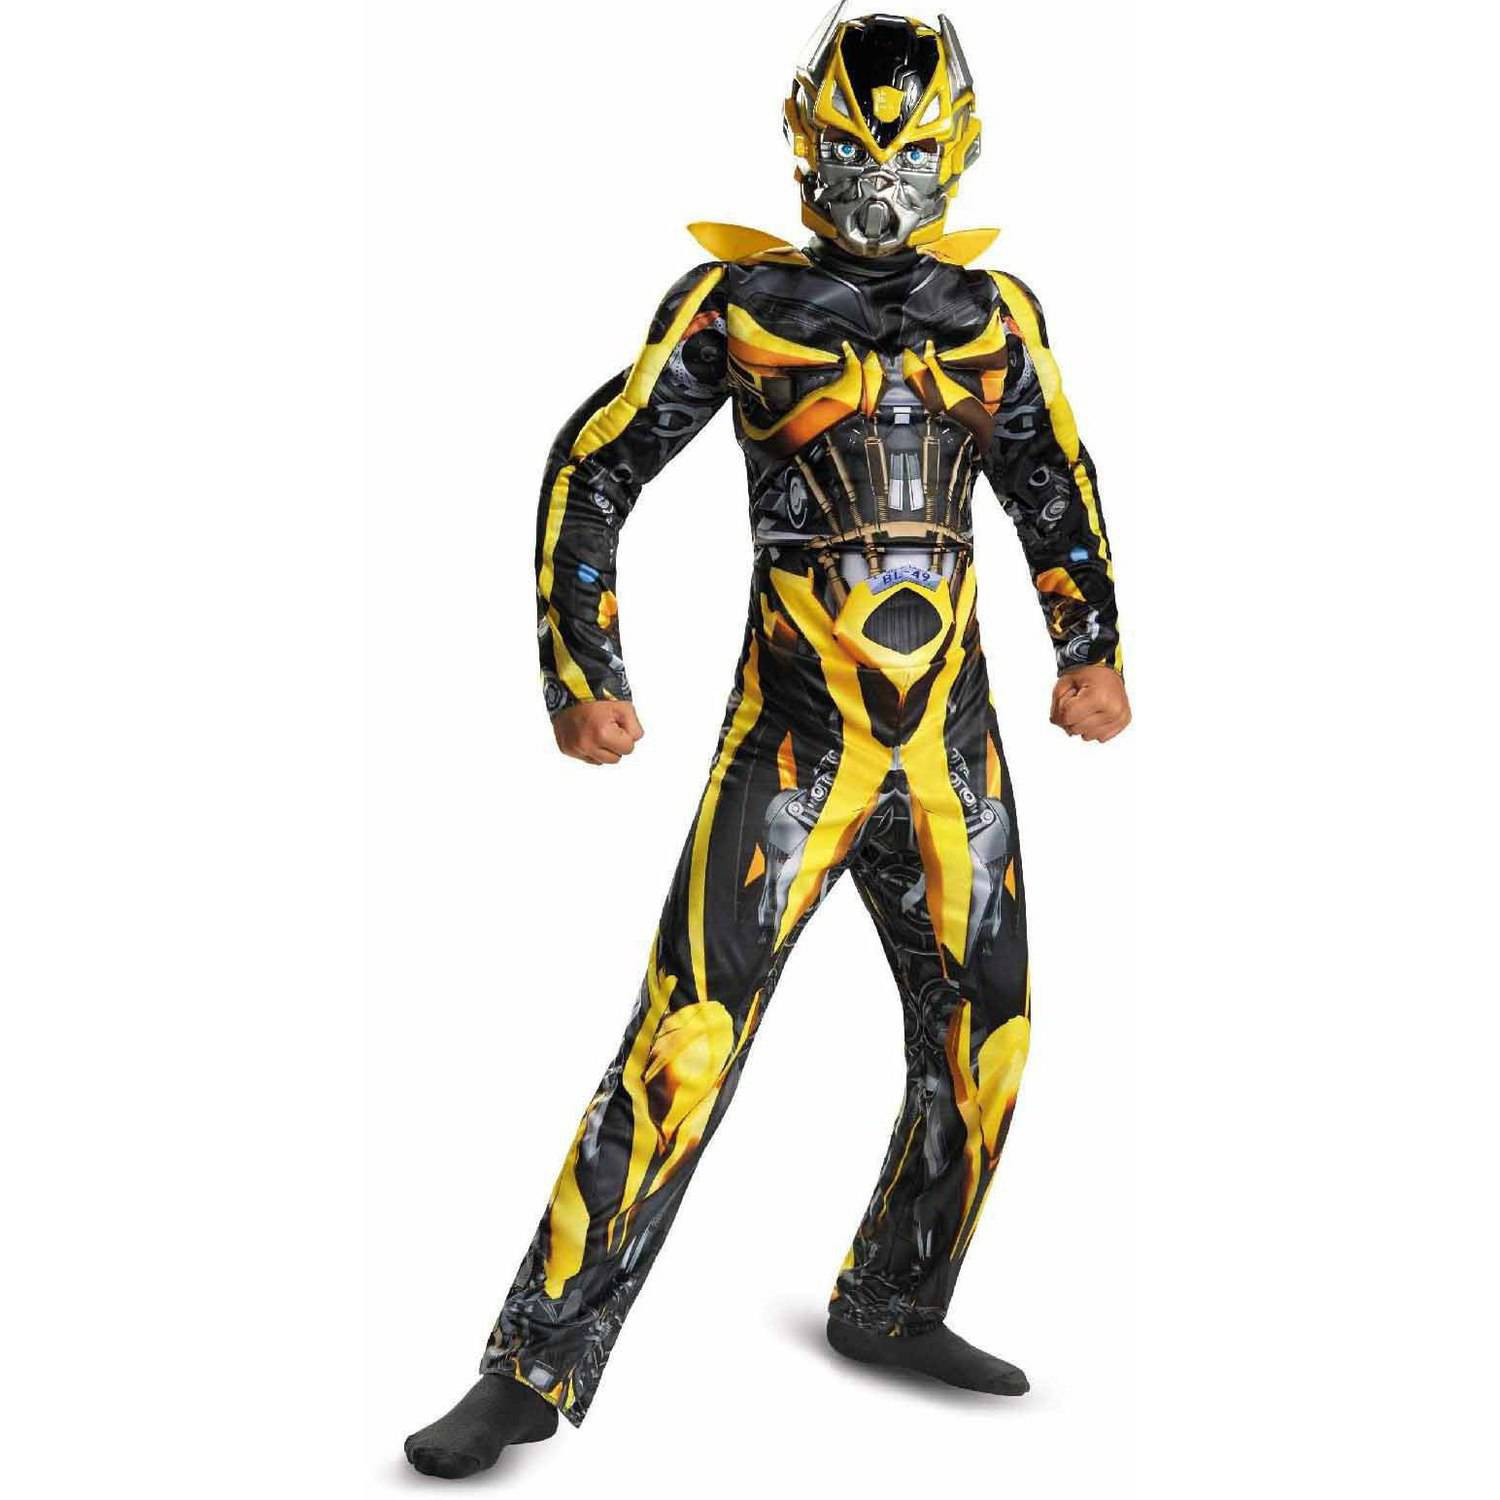 Transformers 4 Age of Extinction Bumblebee Muscle Child Halloween Costume